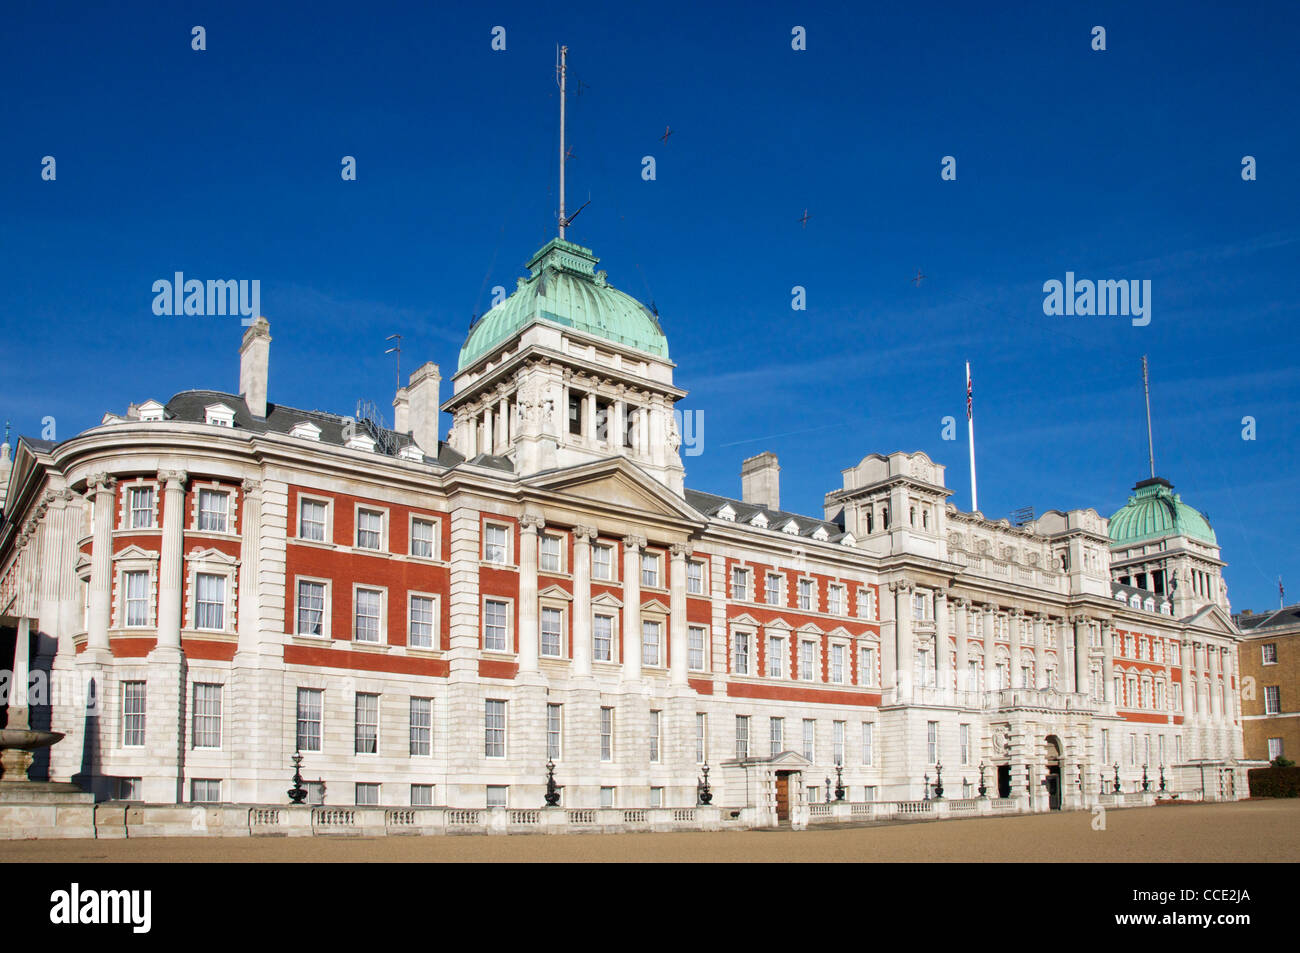 Admiralty House Horse Guards Parade London England Stock Photo